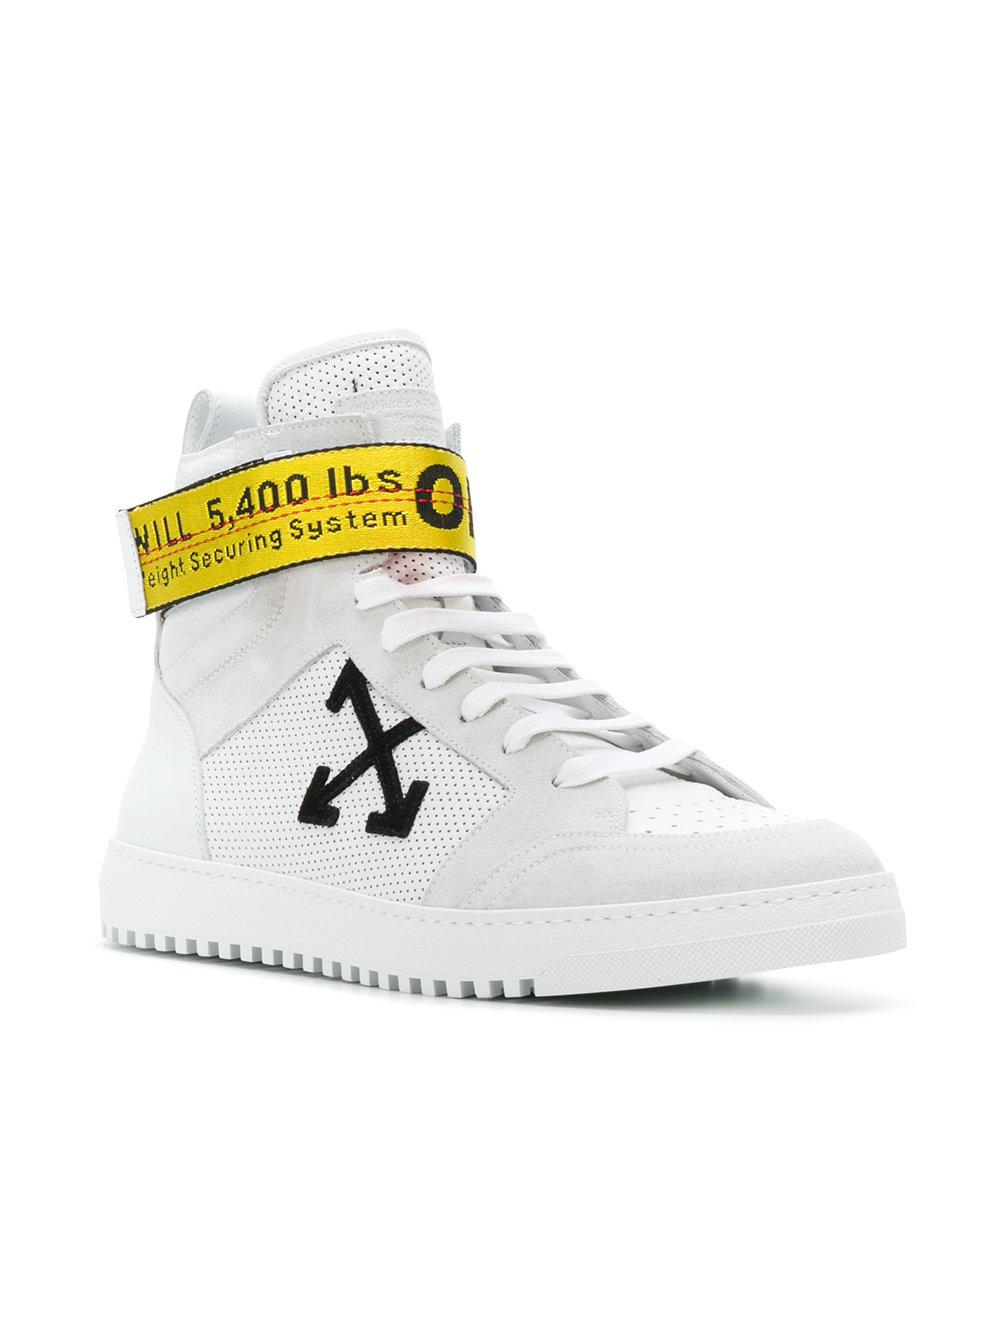 separation shoes 192a0 4504d Off-White c o Virgil Abloh Industrial Tape High Top Sneakers in ...